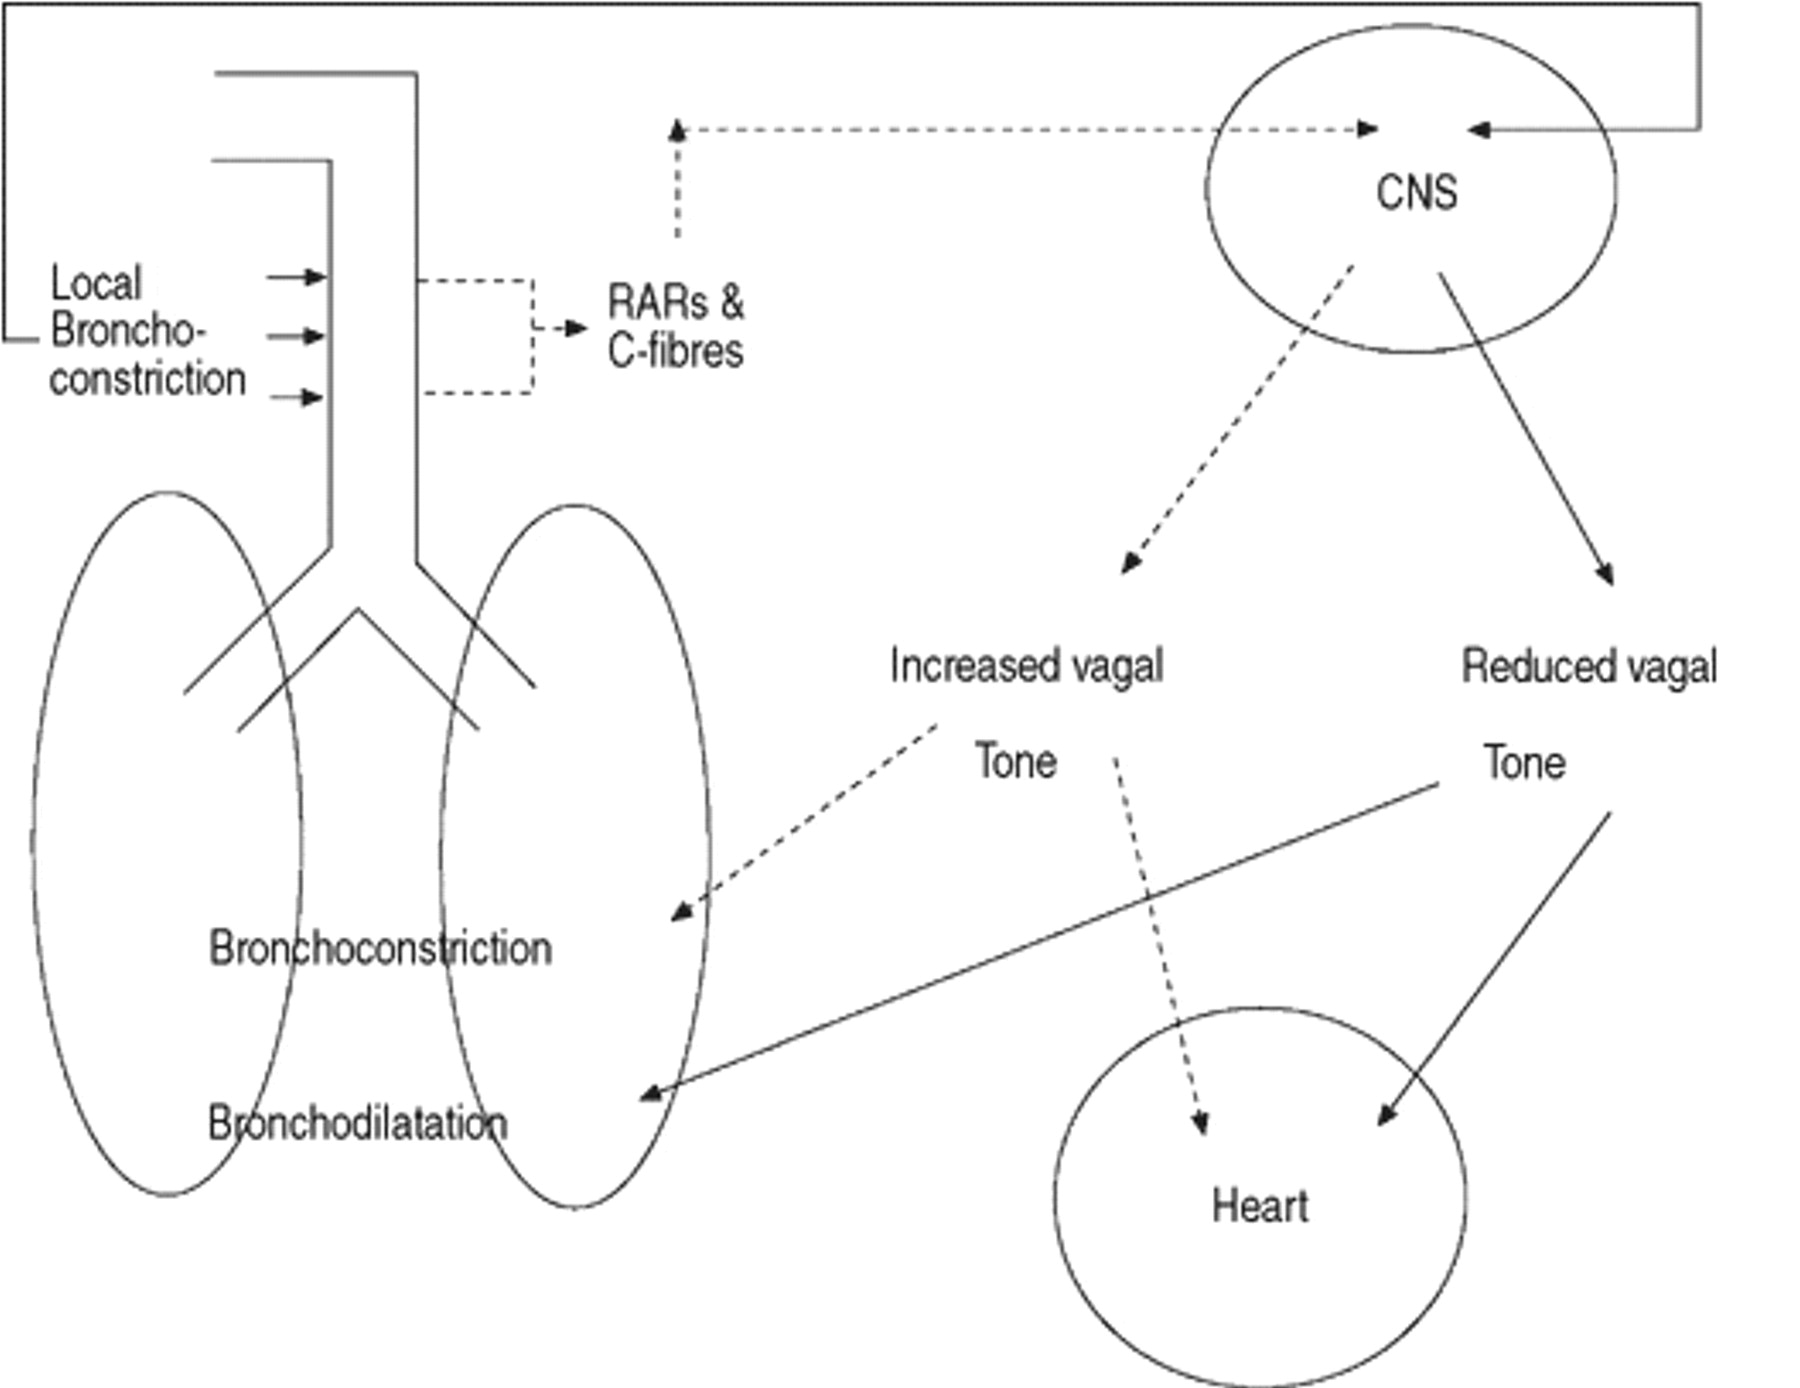 The effect of sulphur dioxide exposure on indices of heart